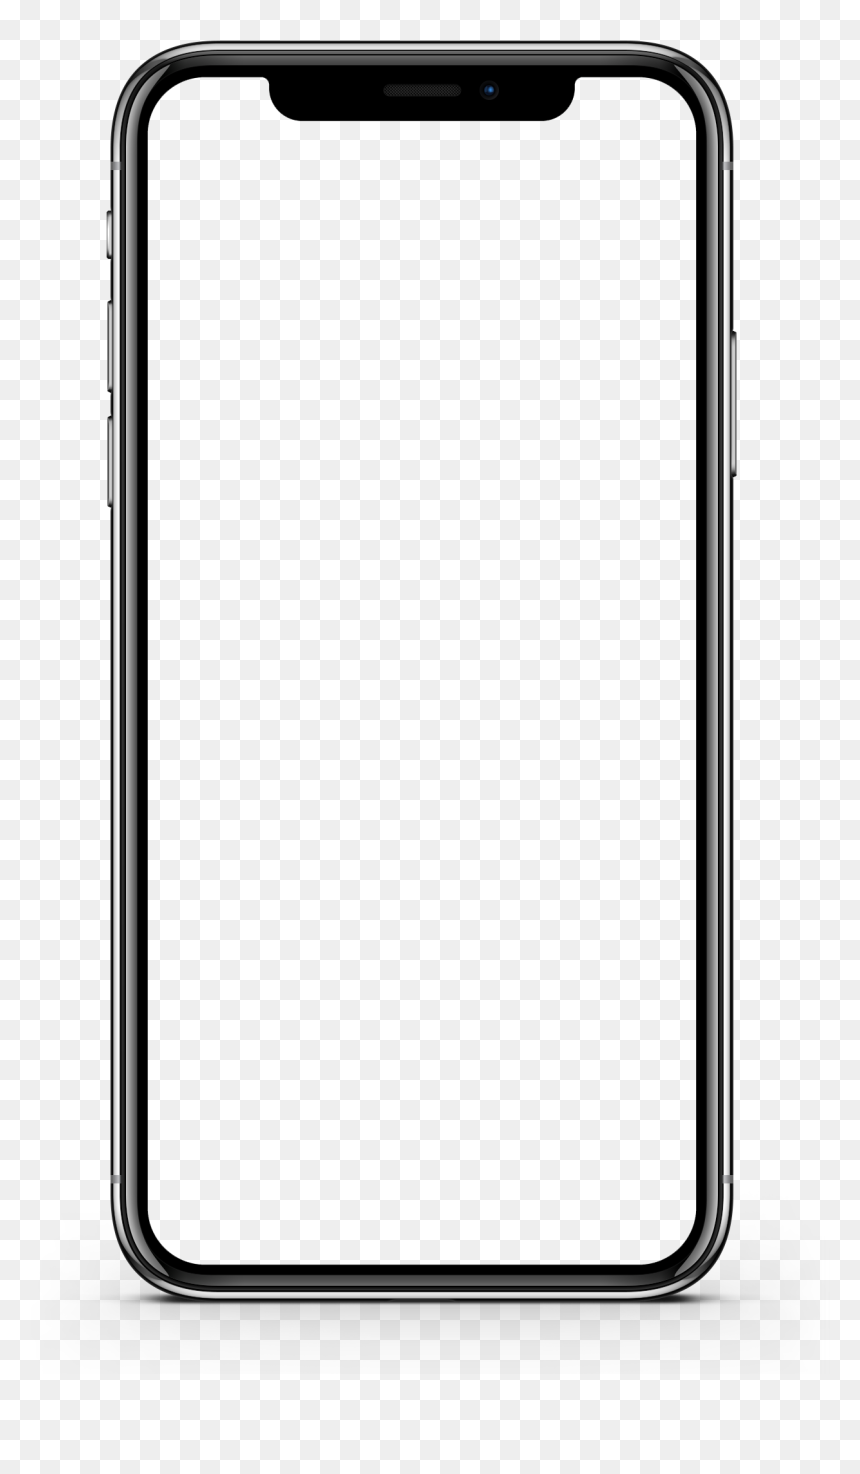 Iphone 11 Png Frame Transparent Png Is Pure And Creative Png Image Uploaded By Designer To Search More Free Png Image Iphone Mockup Iphone Bad Girl Wallpaper